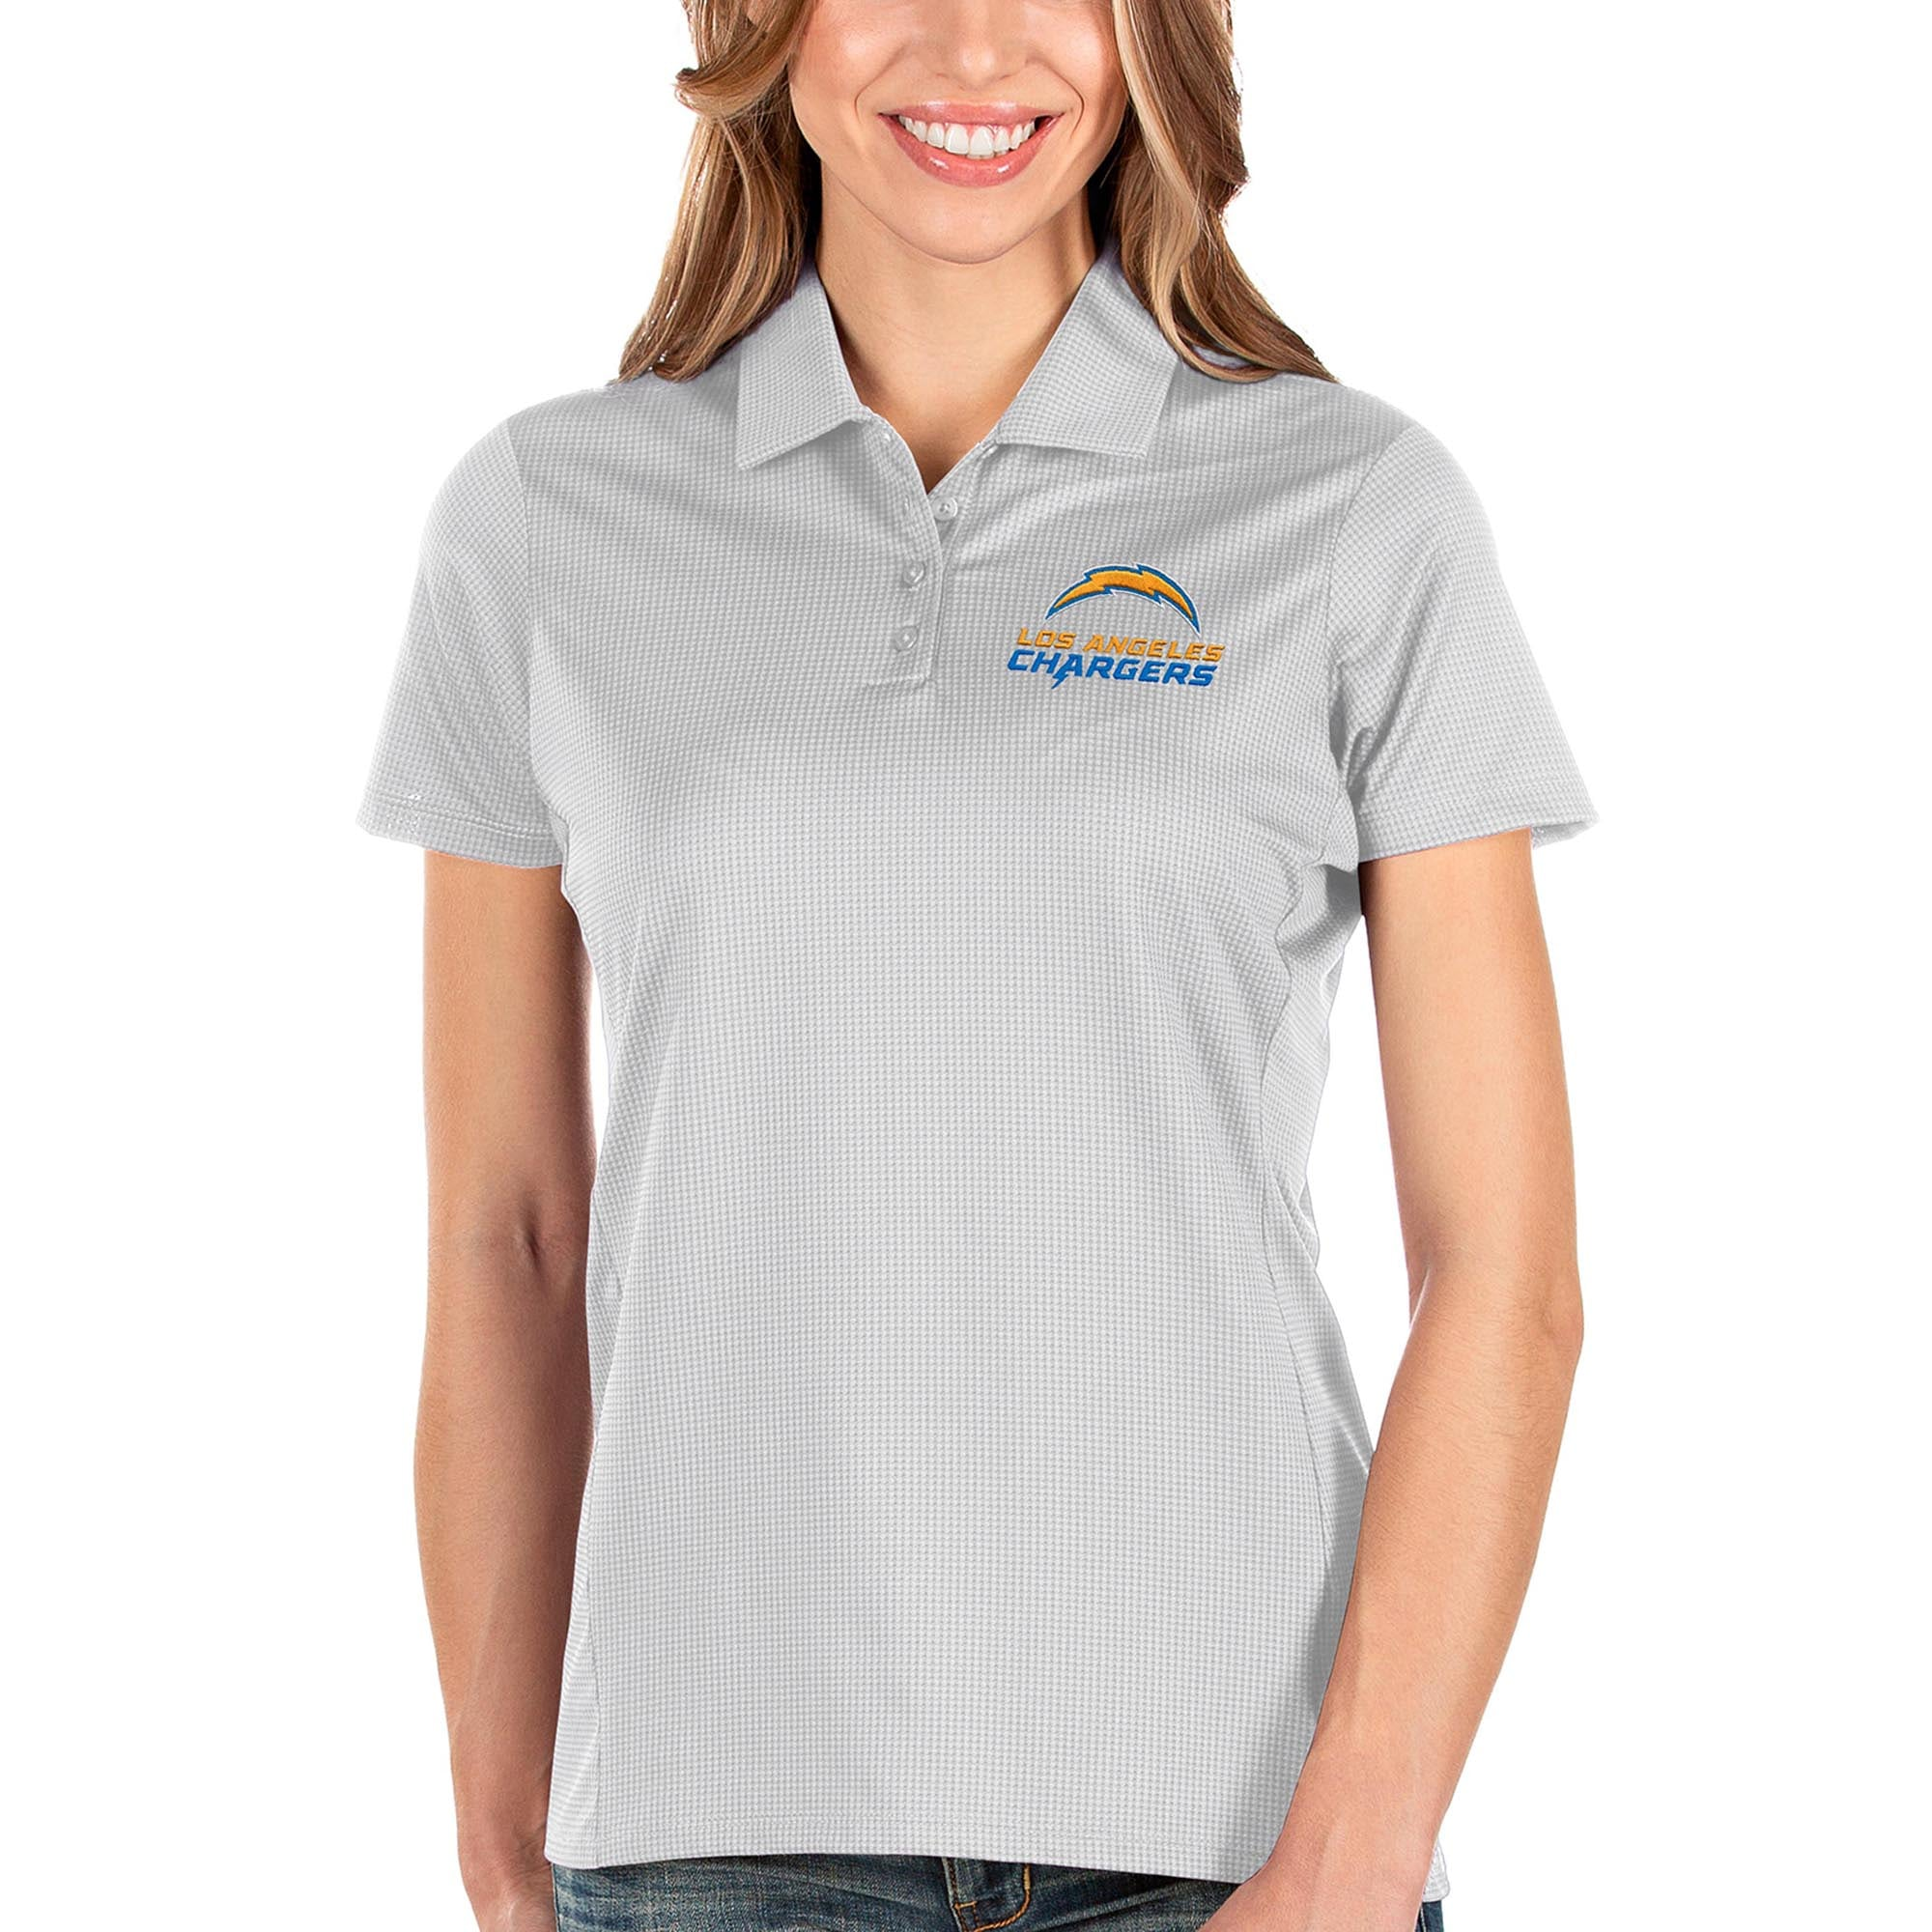 Los Angeles Chargers Antigua Women's Balance Polo - White